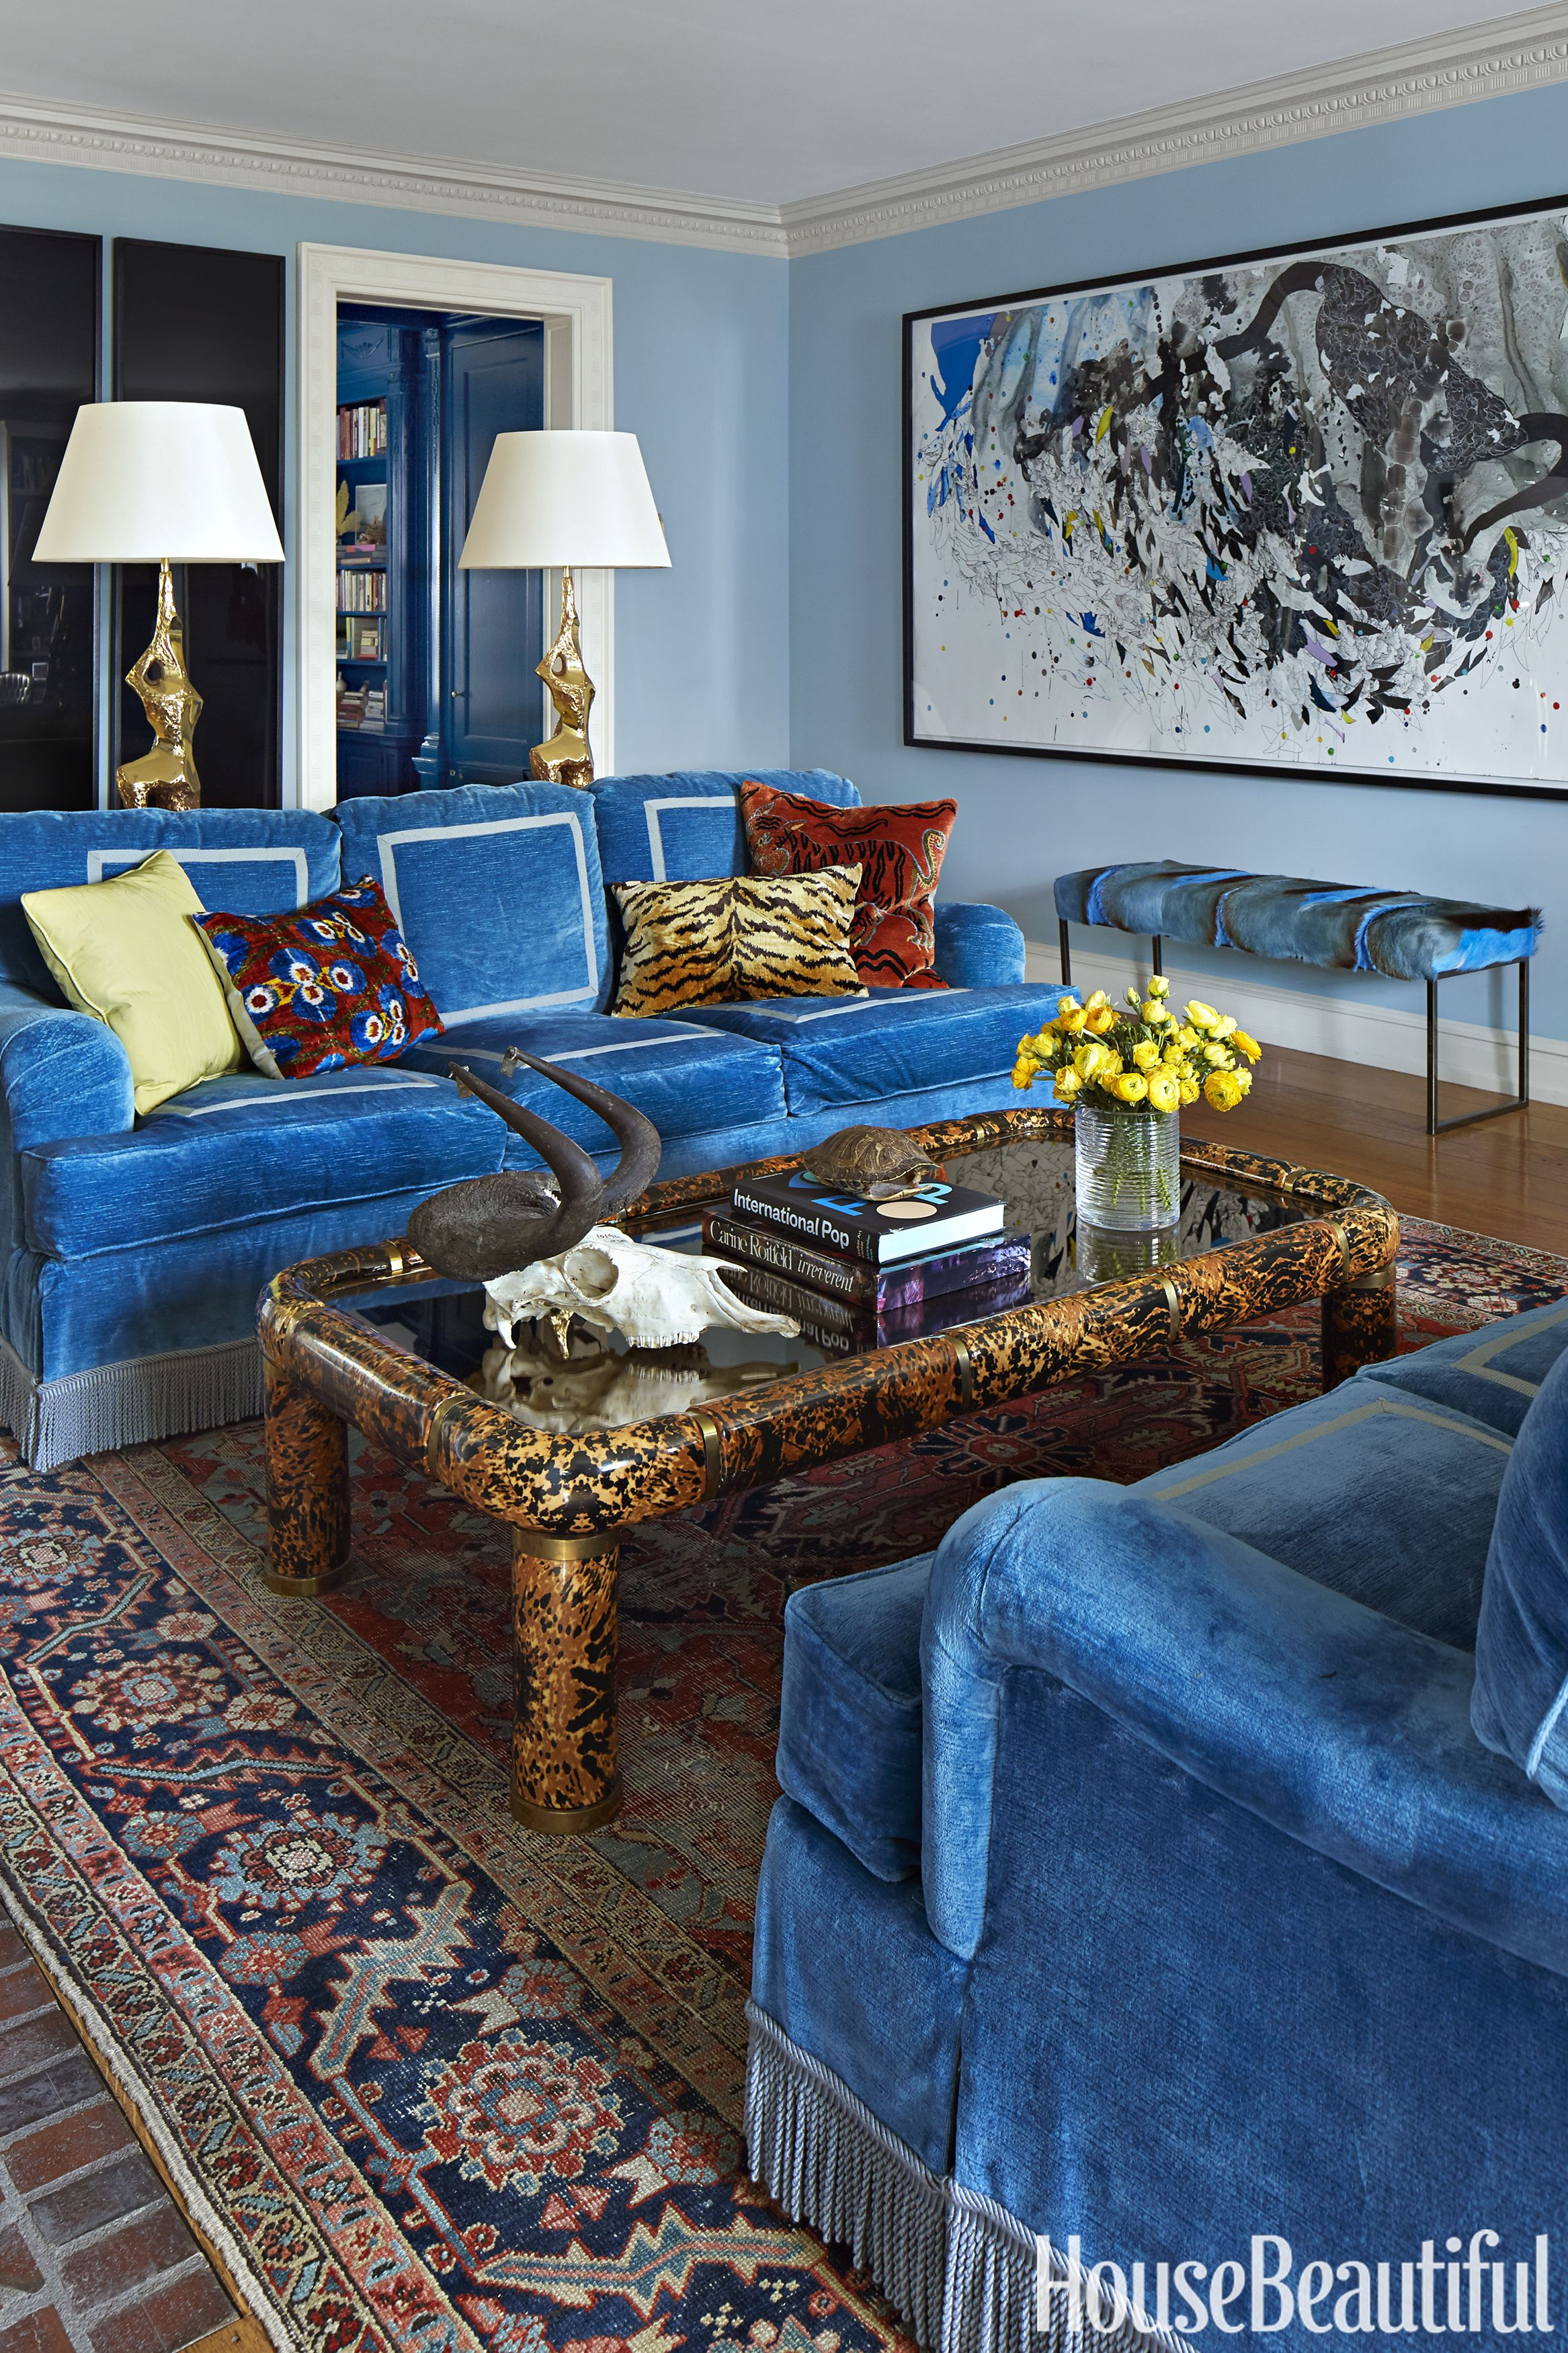 Decor Ideas For Light And Dark Blue Rooms, Blue Living Rooms